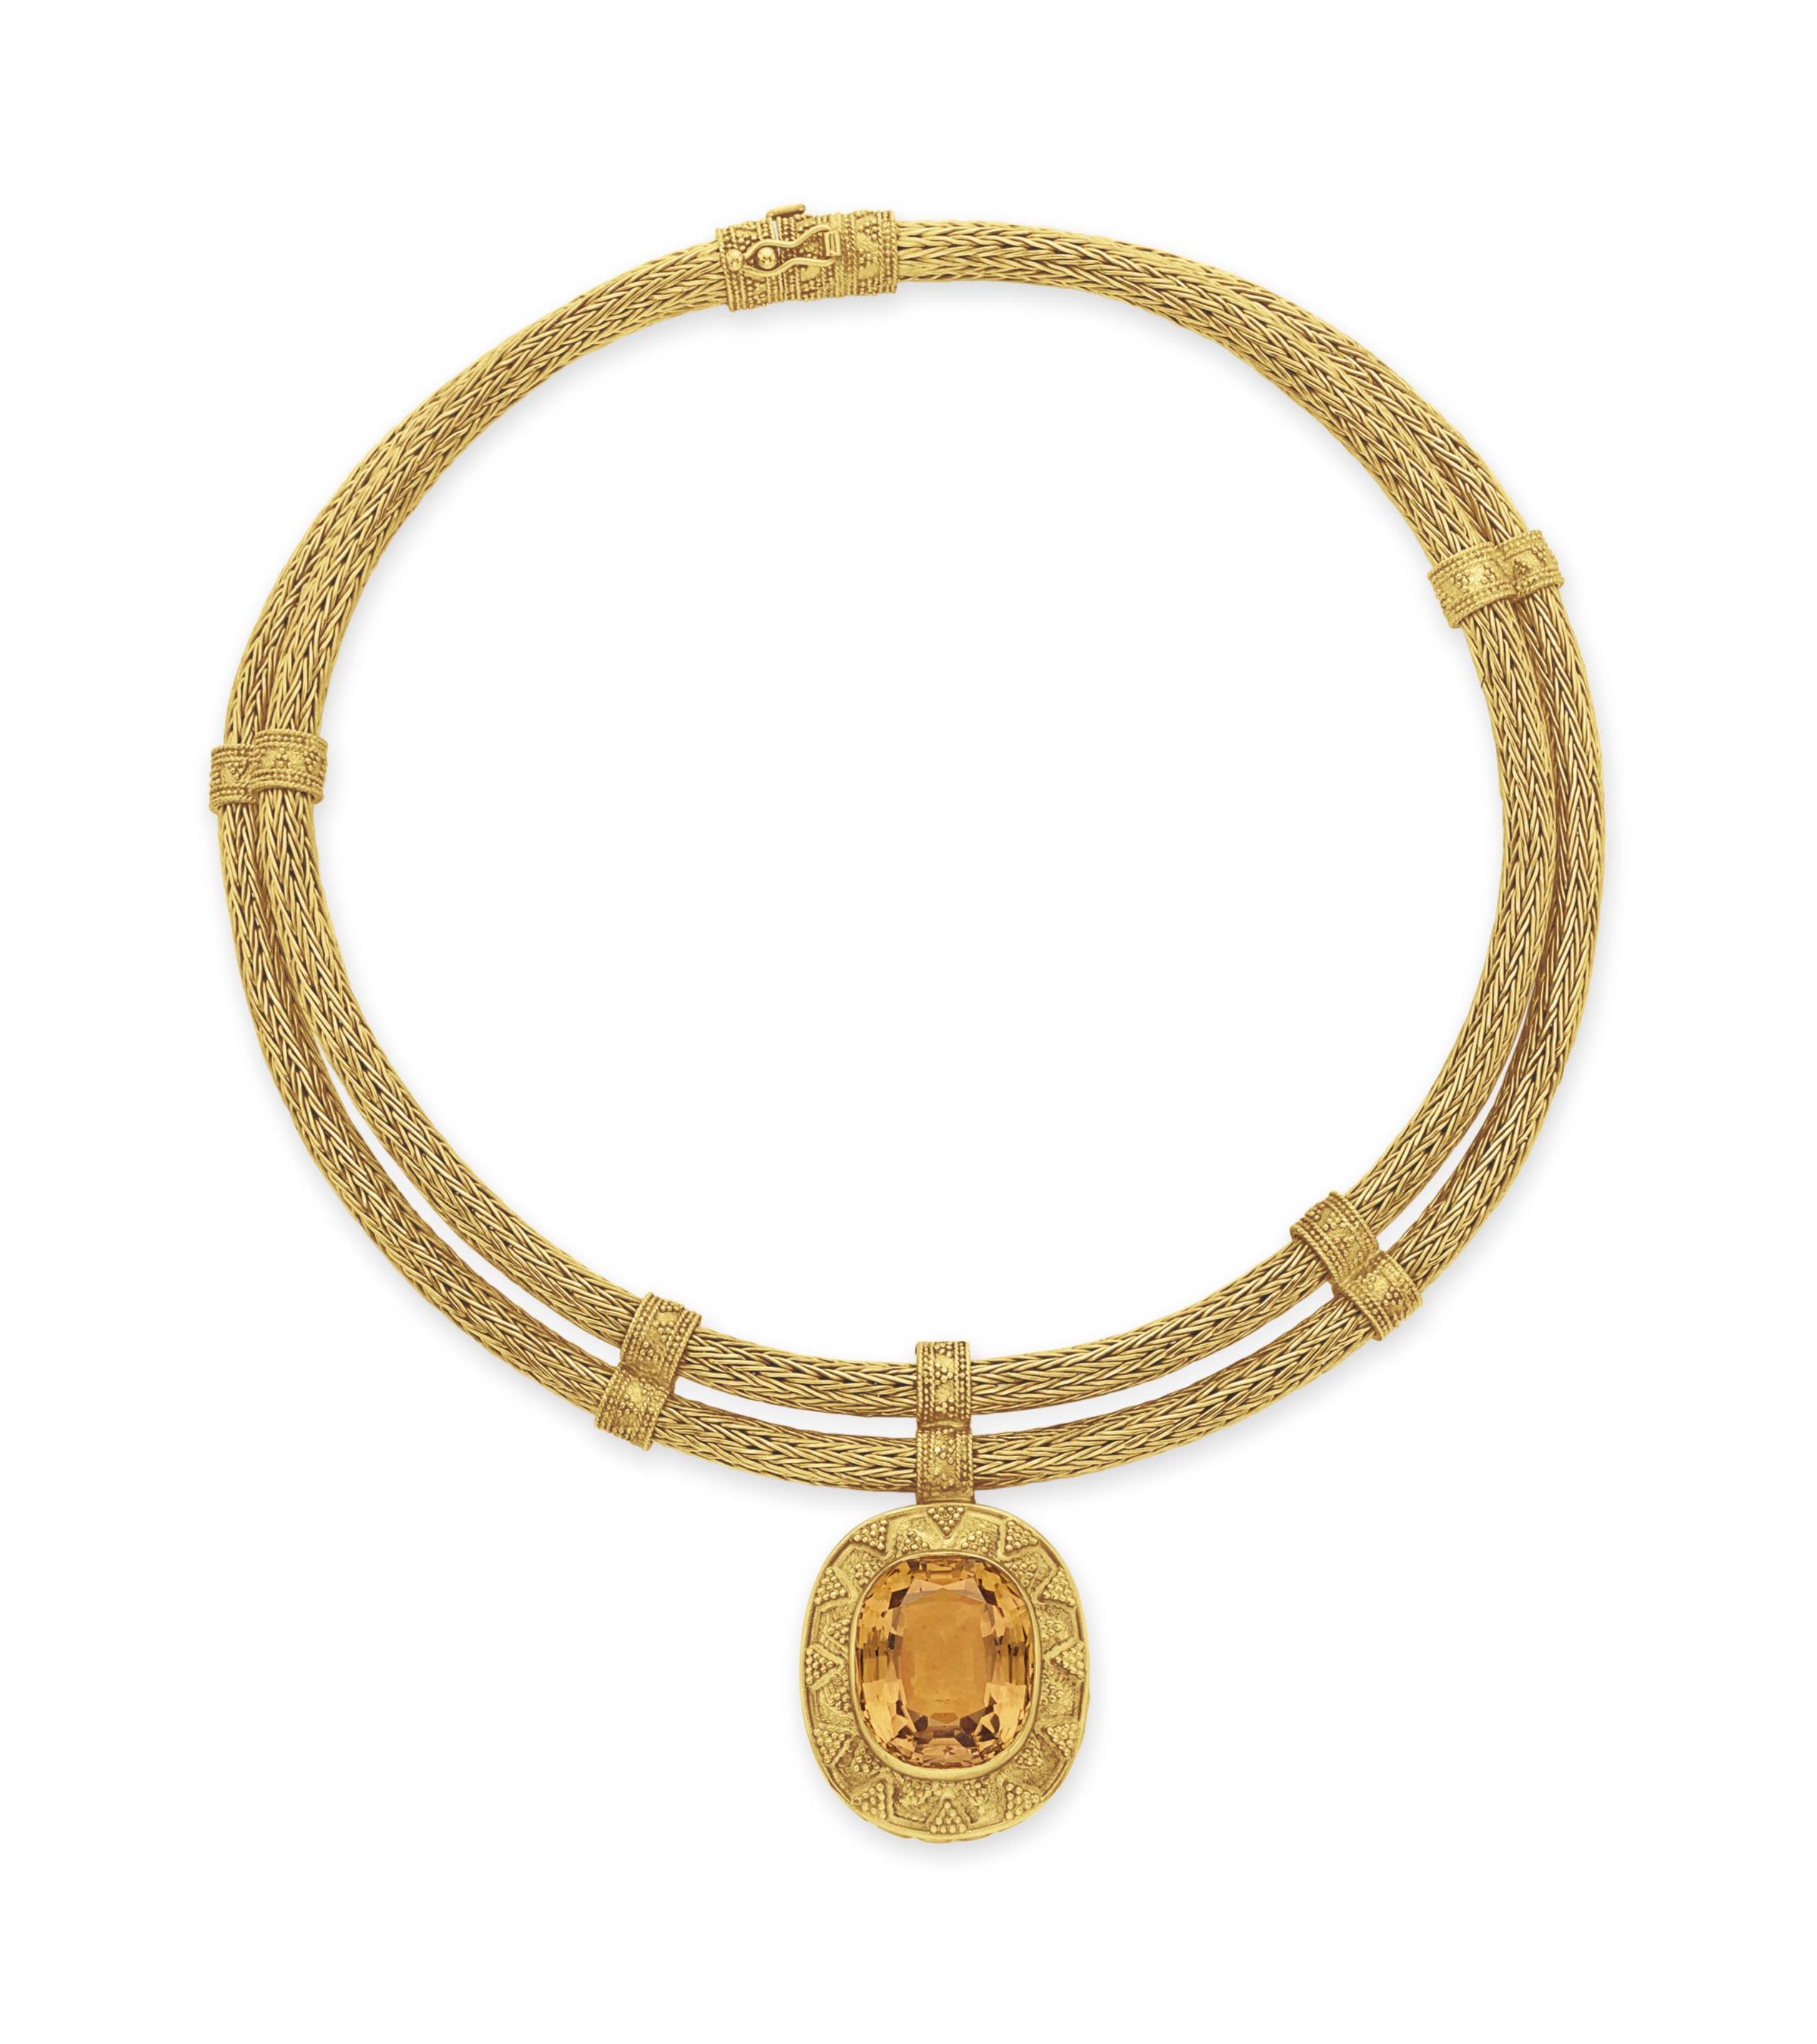 A CITRINE AND GOLD NECKLACE, BY ZOLOTAS